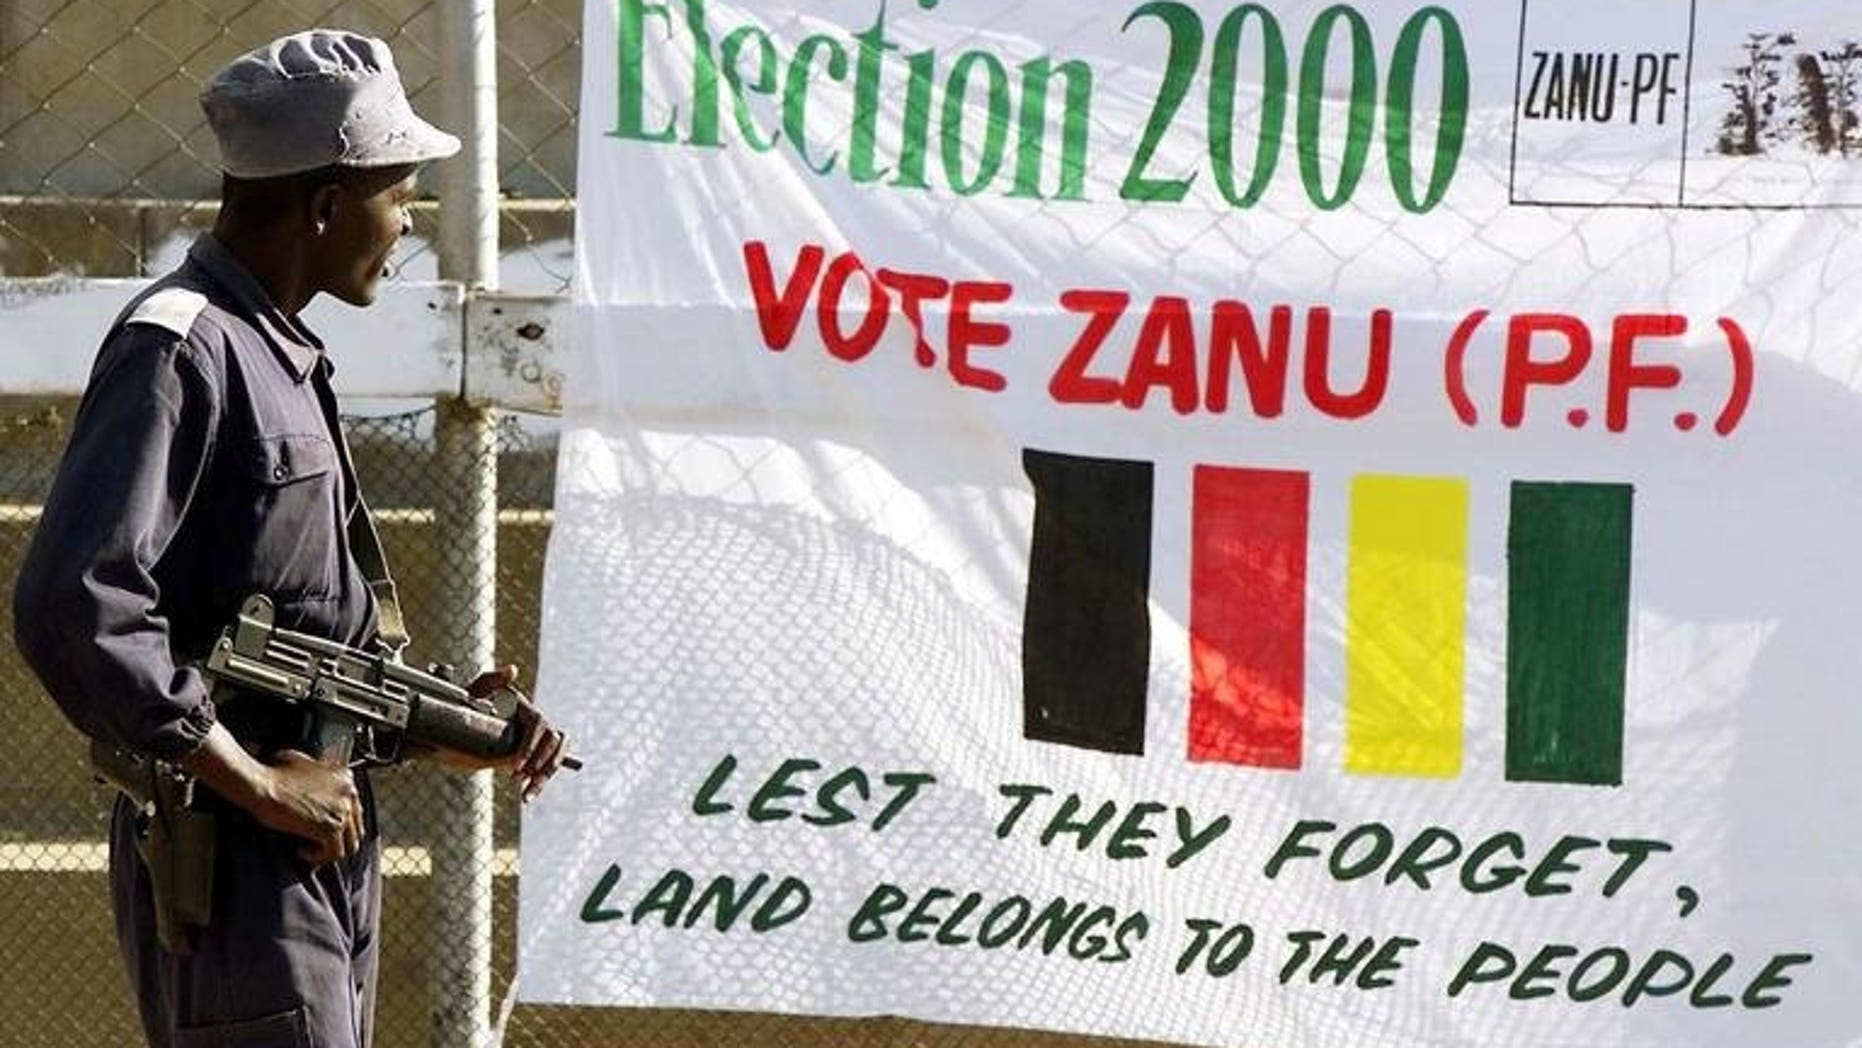 A ZANU-PF poster at a rally in Mutare in 2000. Zimbabwean politician Enos Nkala, who co-founded Robert Mugabe's ZANU party and was defence minister during a massacre of some 20,000 ethnic Ndebele, died Wednesday, a party official said.